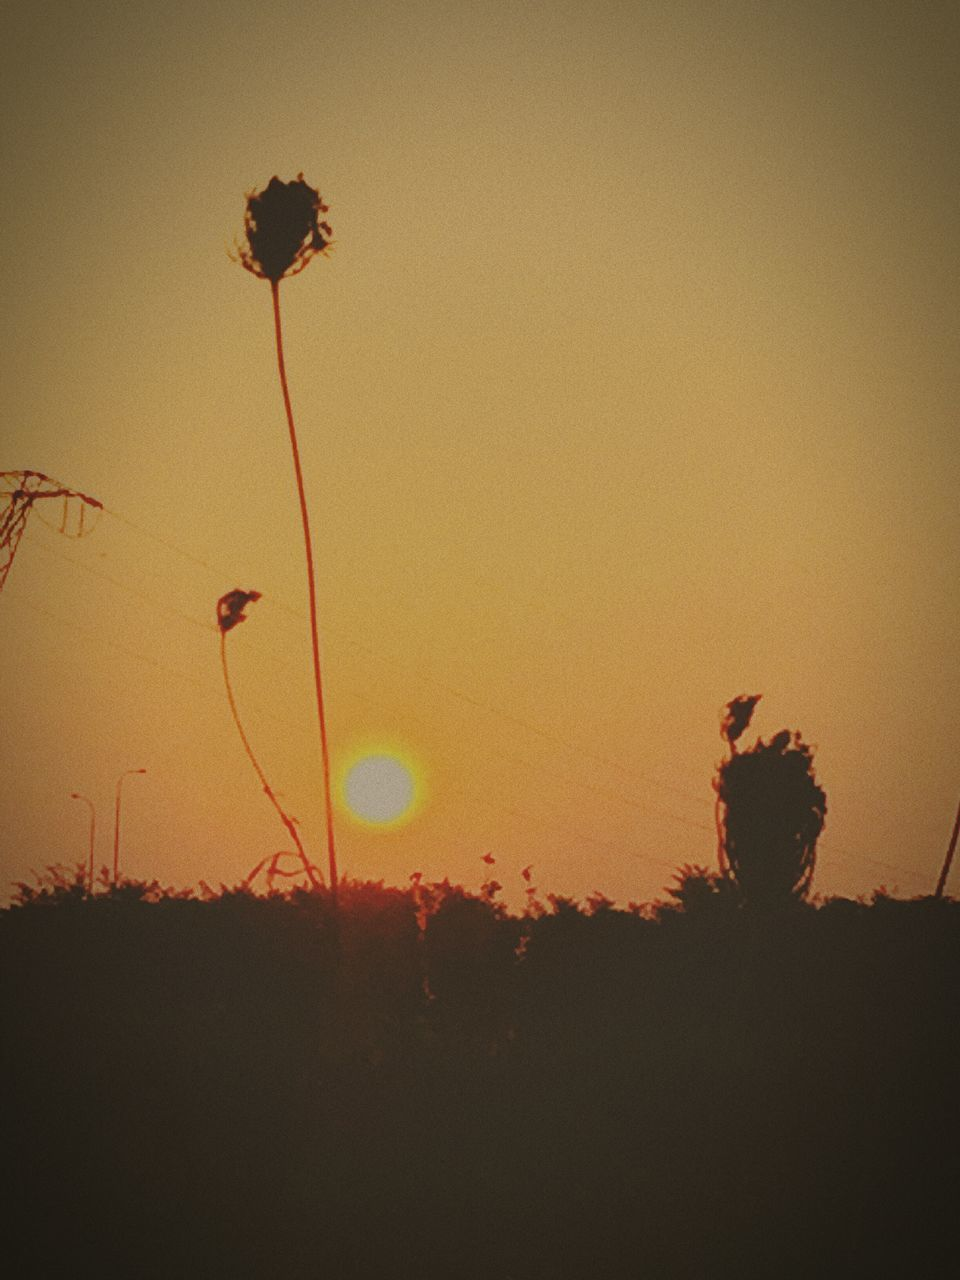 sunset, silhouette, nature, growth, beauty in nature, sun, outdoors, plant, no people, clear sky, tranquil scene, scenics, tranquility, field, tree, sky, landscape, sunlight, flower, grass, day